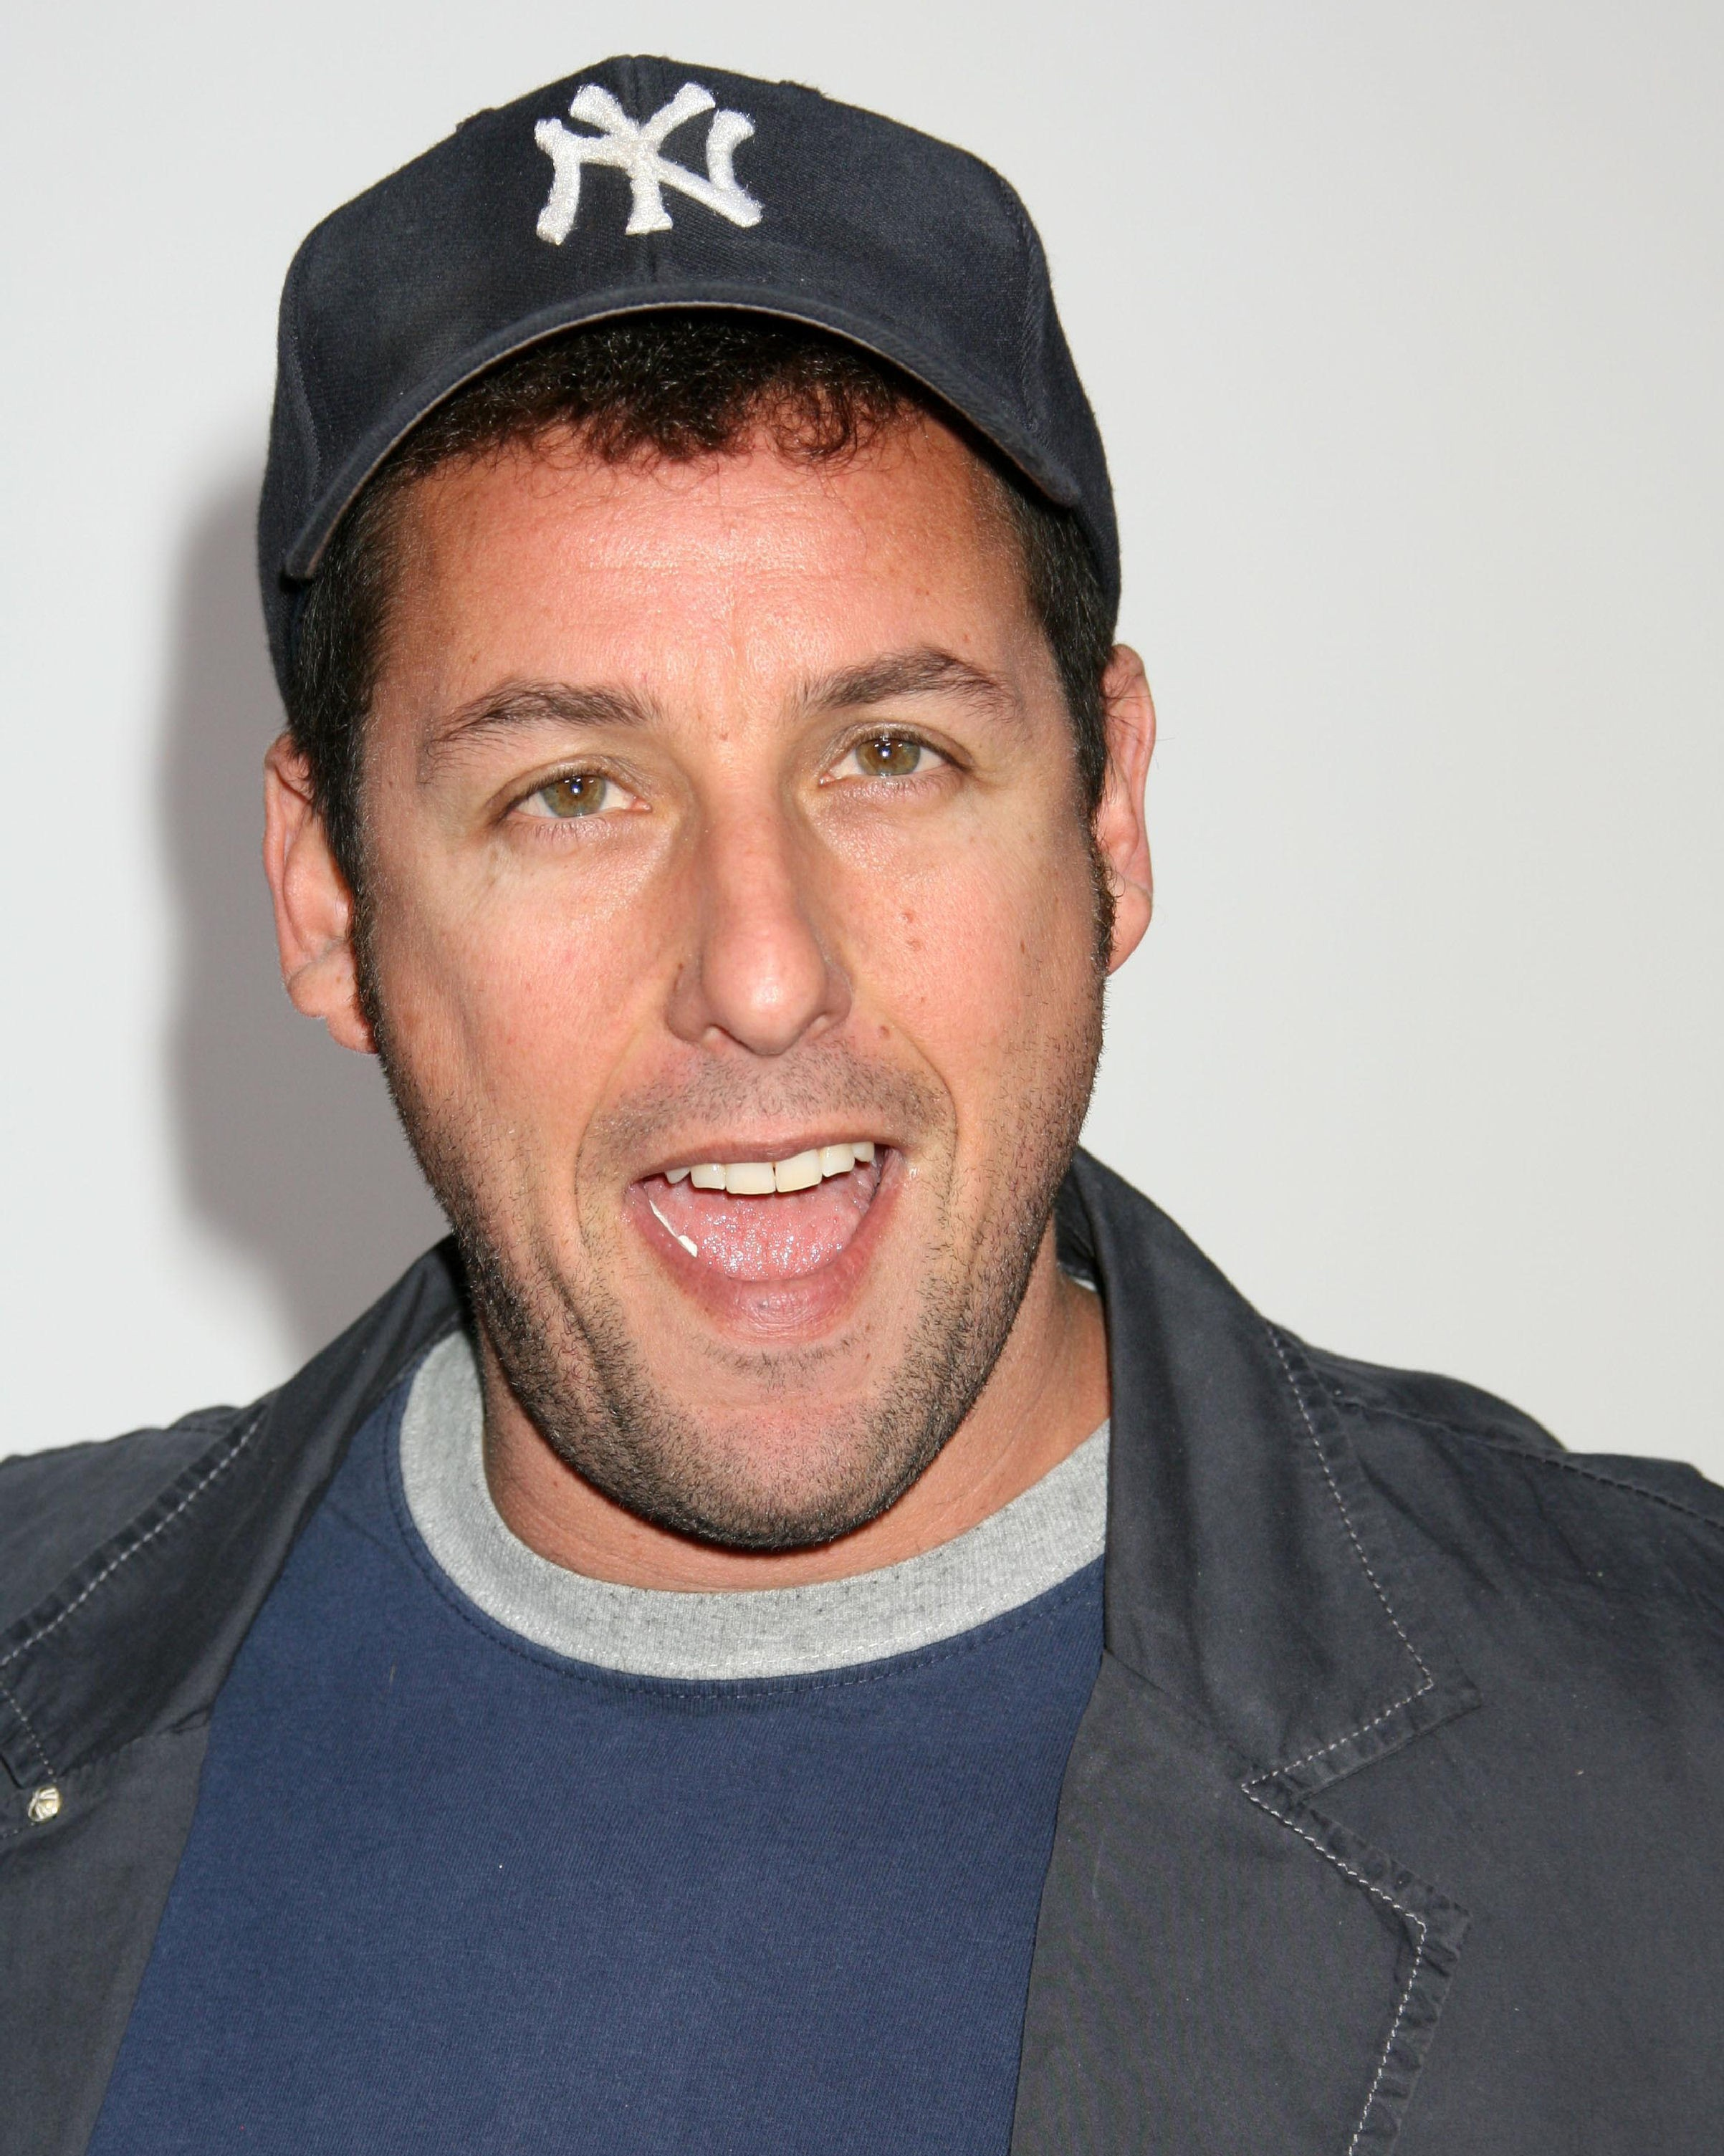 Adam Sandler Cosby Show the cast of the cosby show: then & now | tomorrowoman